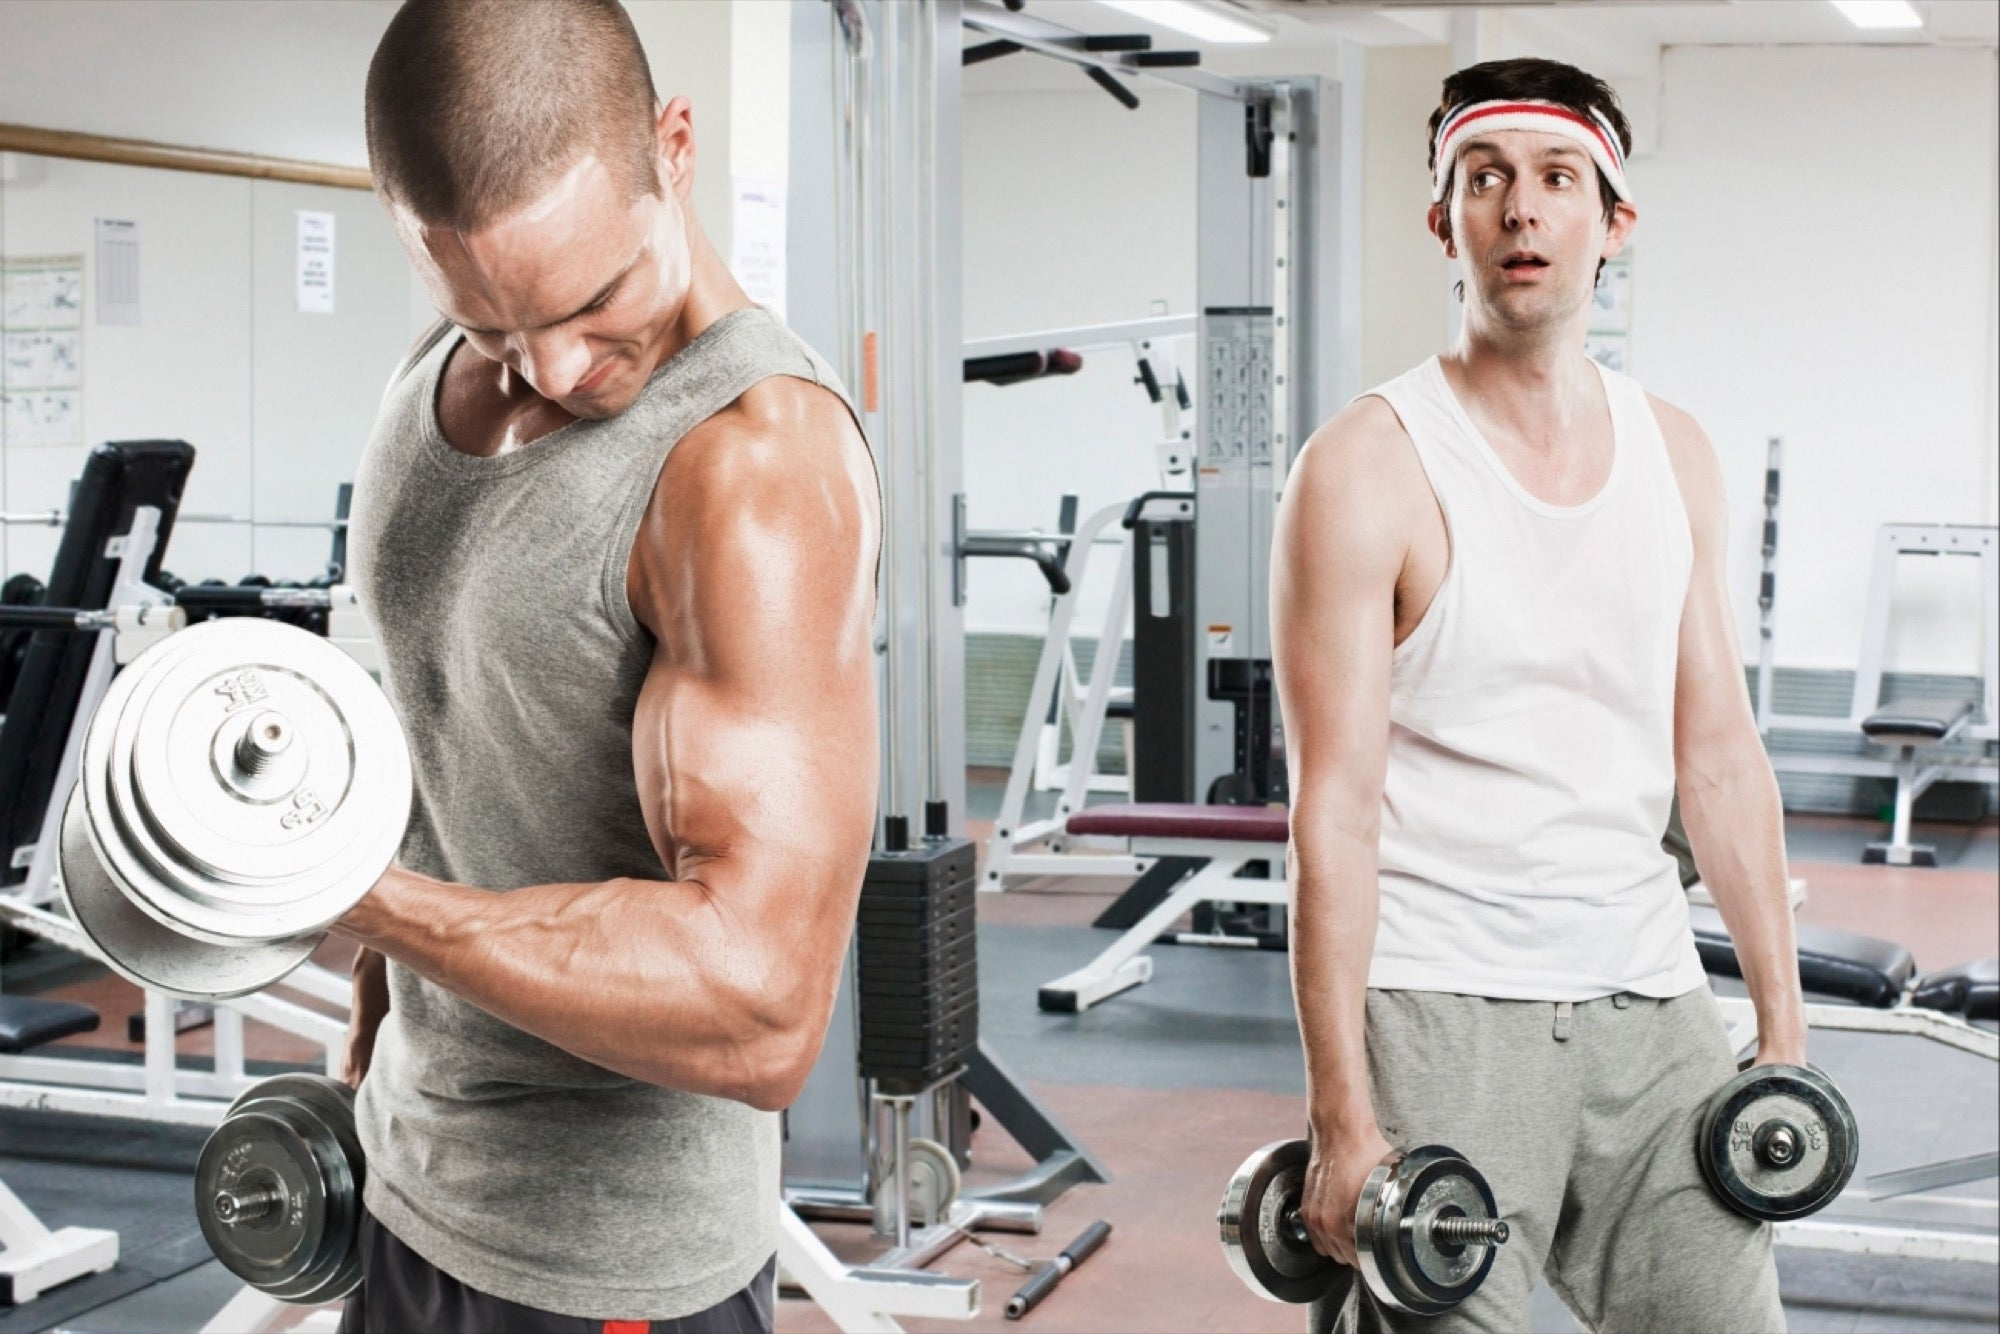 Scrawny Guy Envious of Bicep Curls Bro